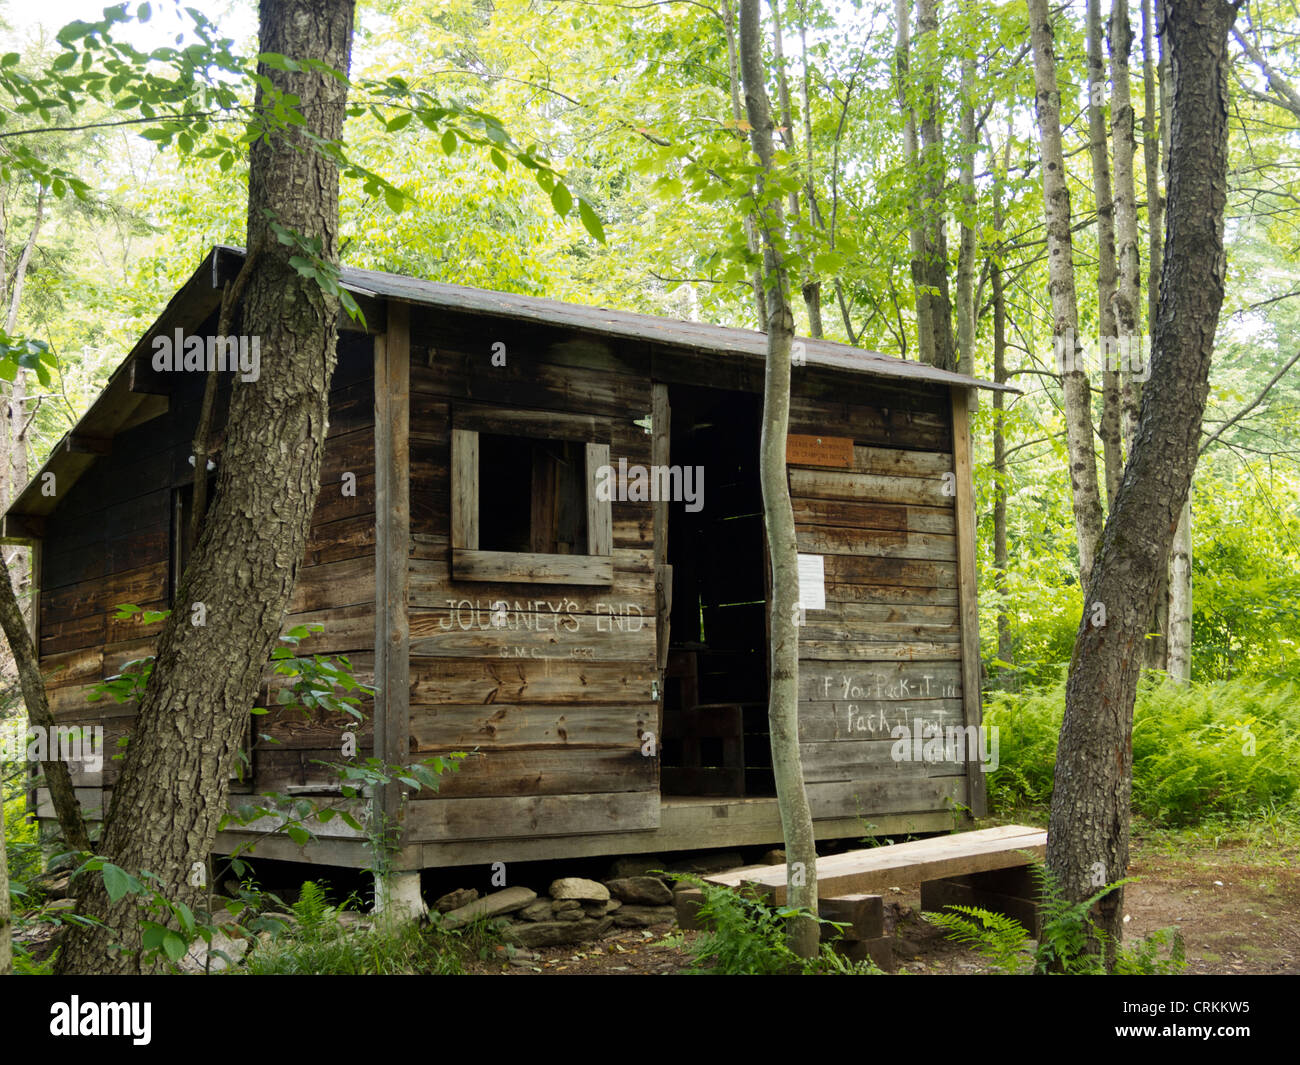 Journey's End Camp, Short Trail, Waterbury Center, Vermont, USA - Stock Image